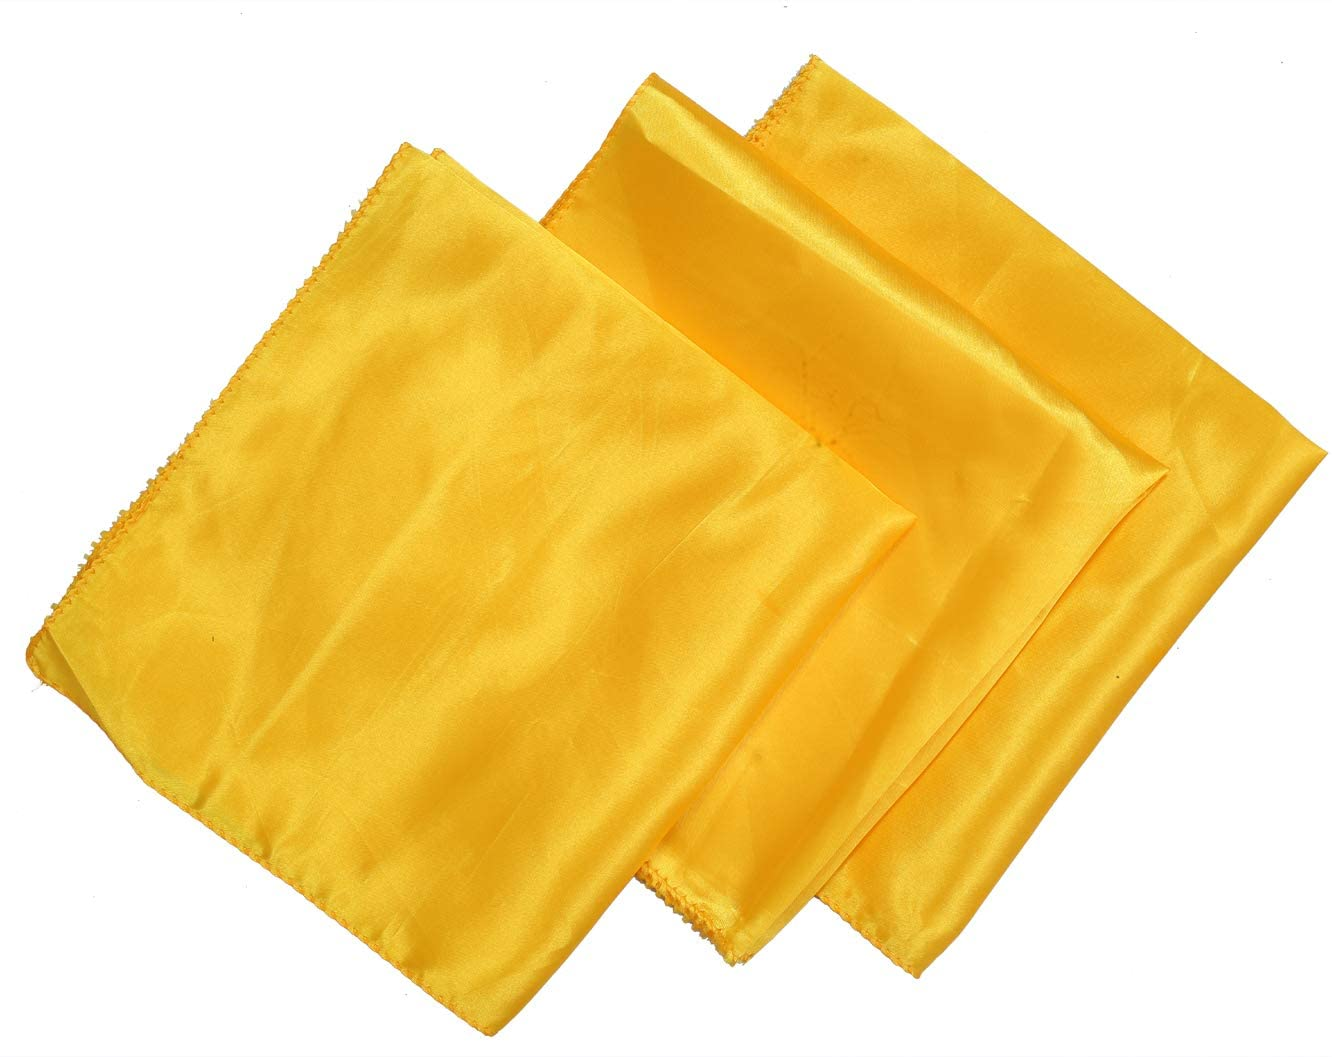 VDS Table Napkins 20 X 20 Inch Square Satin Cloth Dinner Napkins for Wedding Party Decorations (Pack of 25) - Yellow Gold